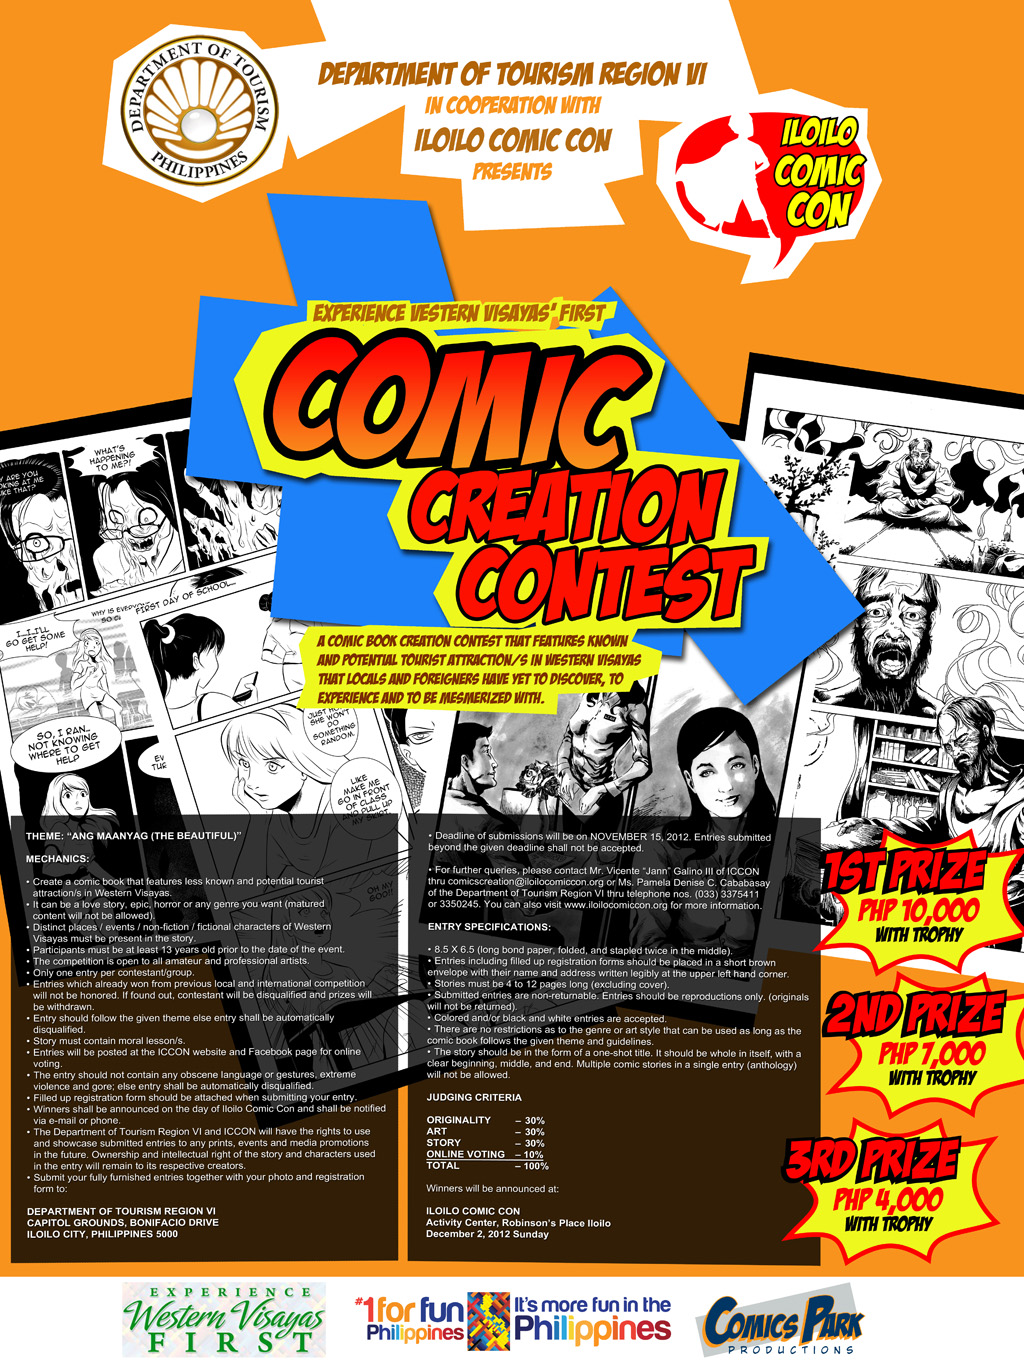 iloilo-comic-con-comic-creation-contest